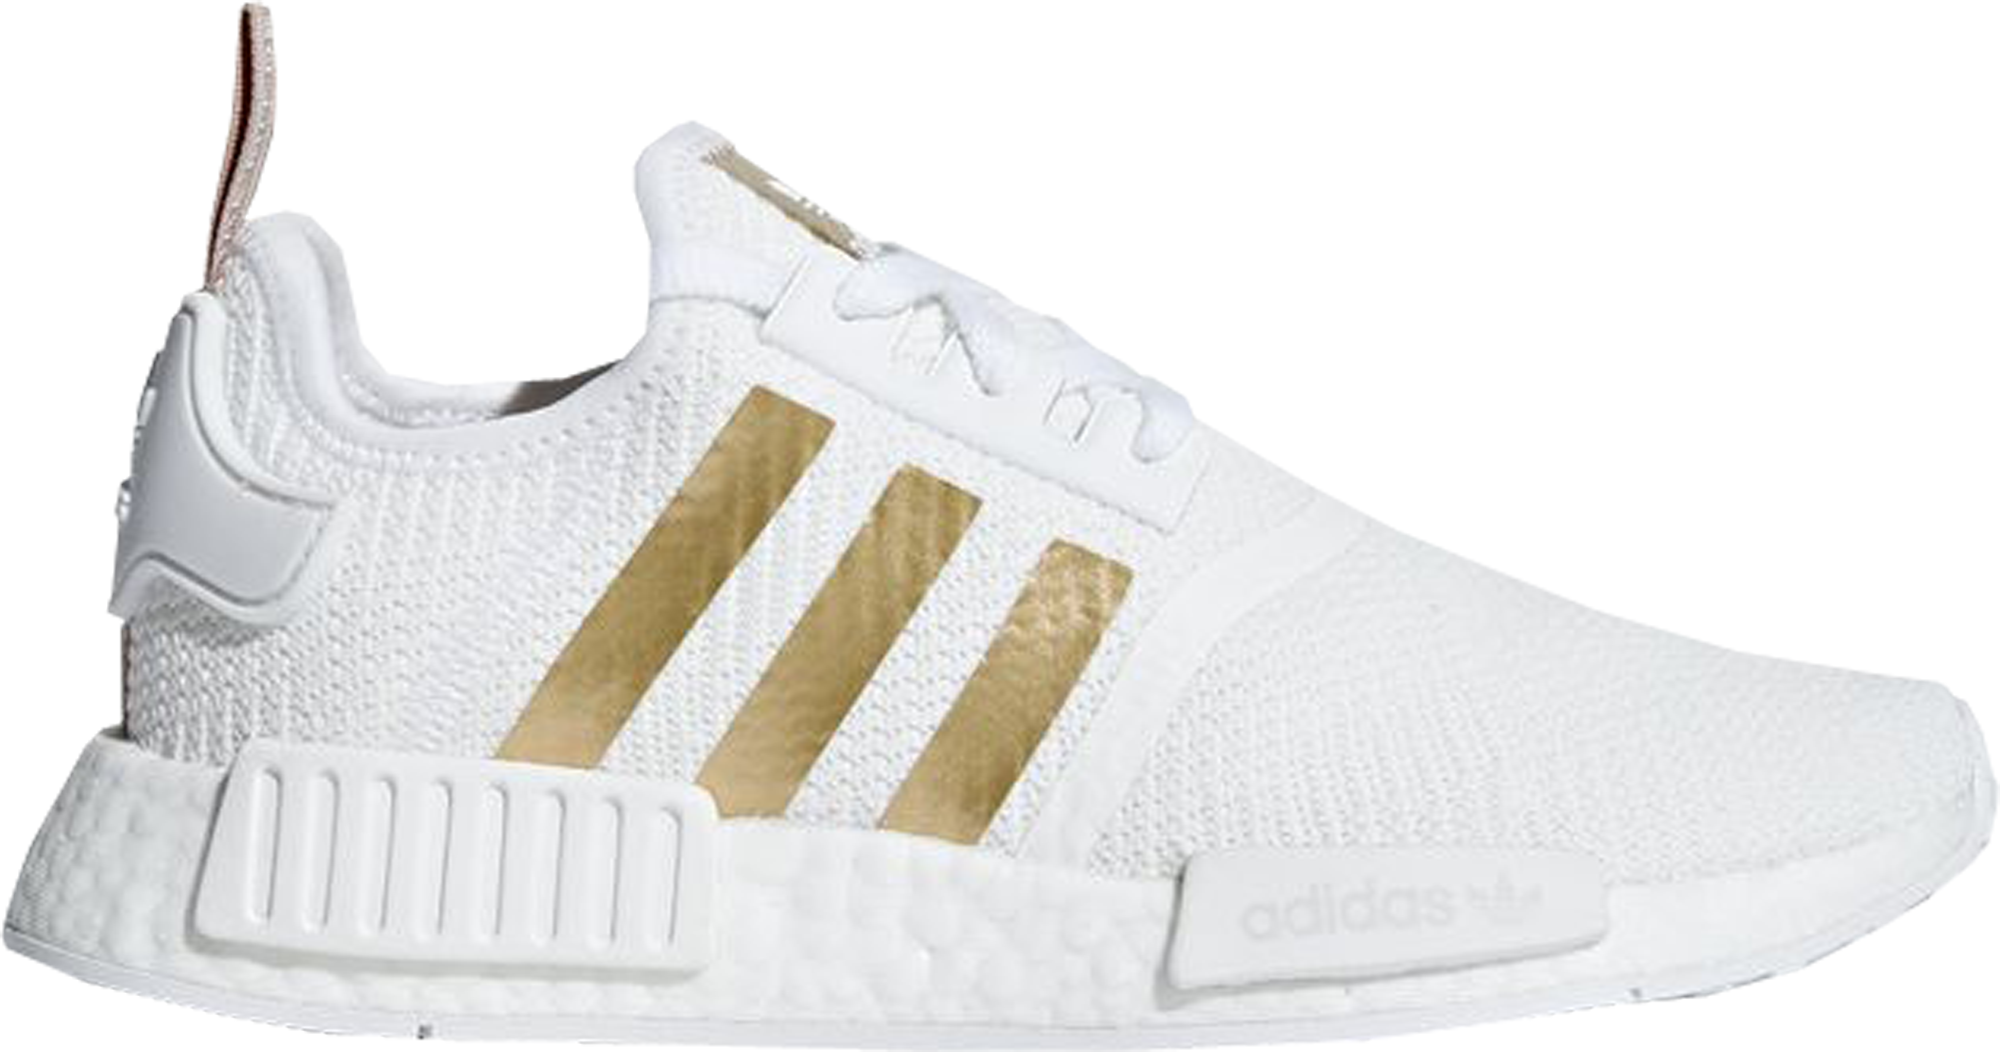 adidas NMD R1 Cloud White Copper Metallic (W)